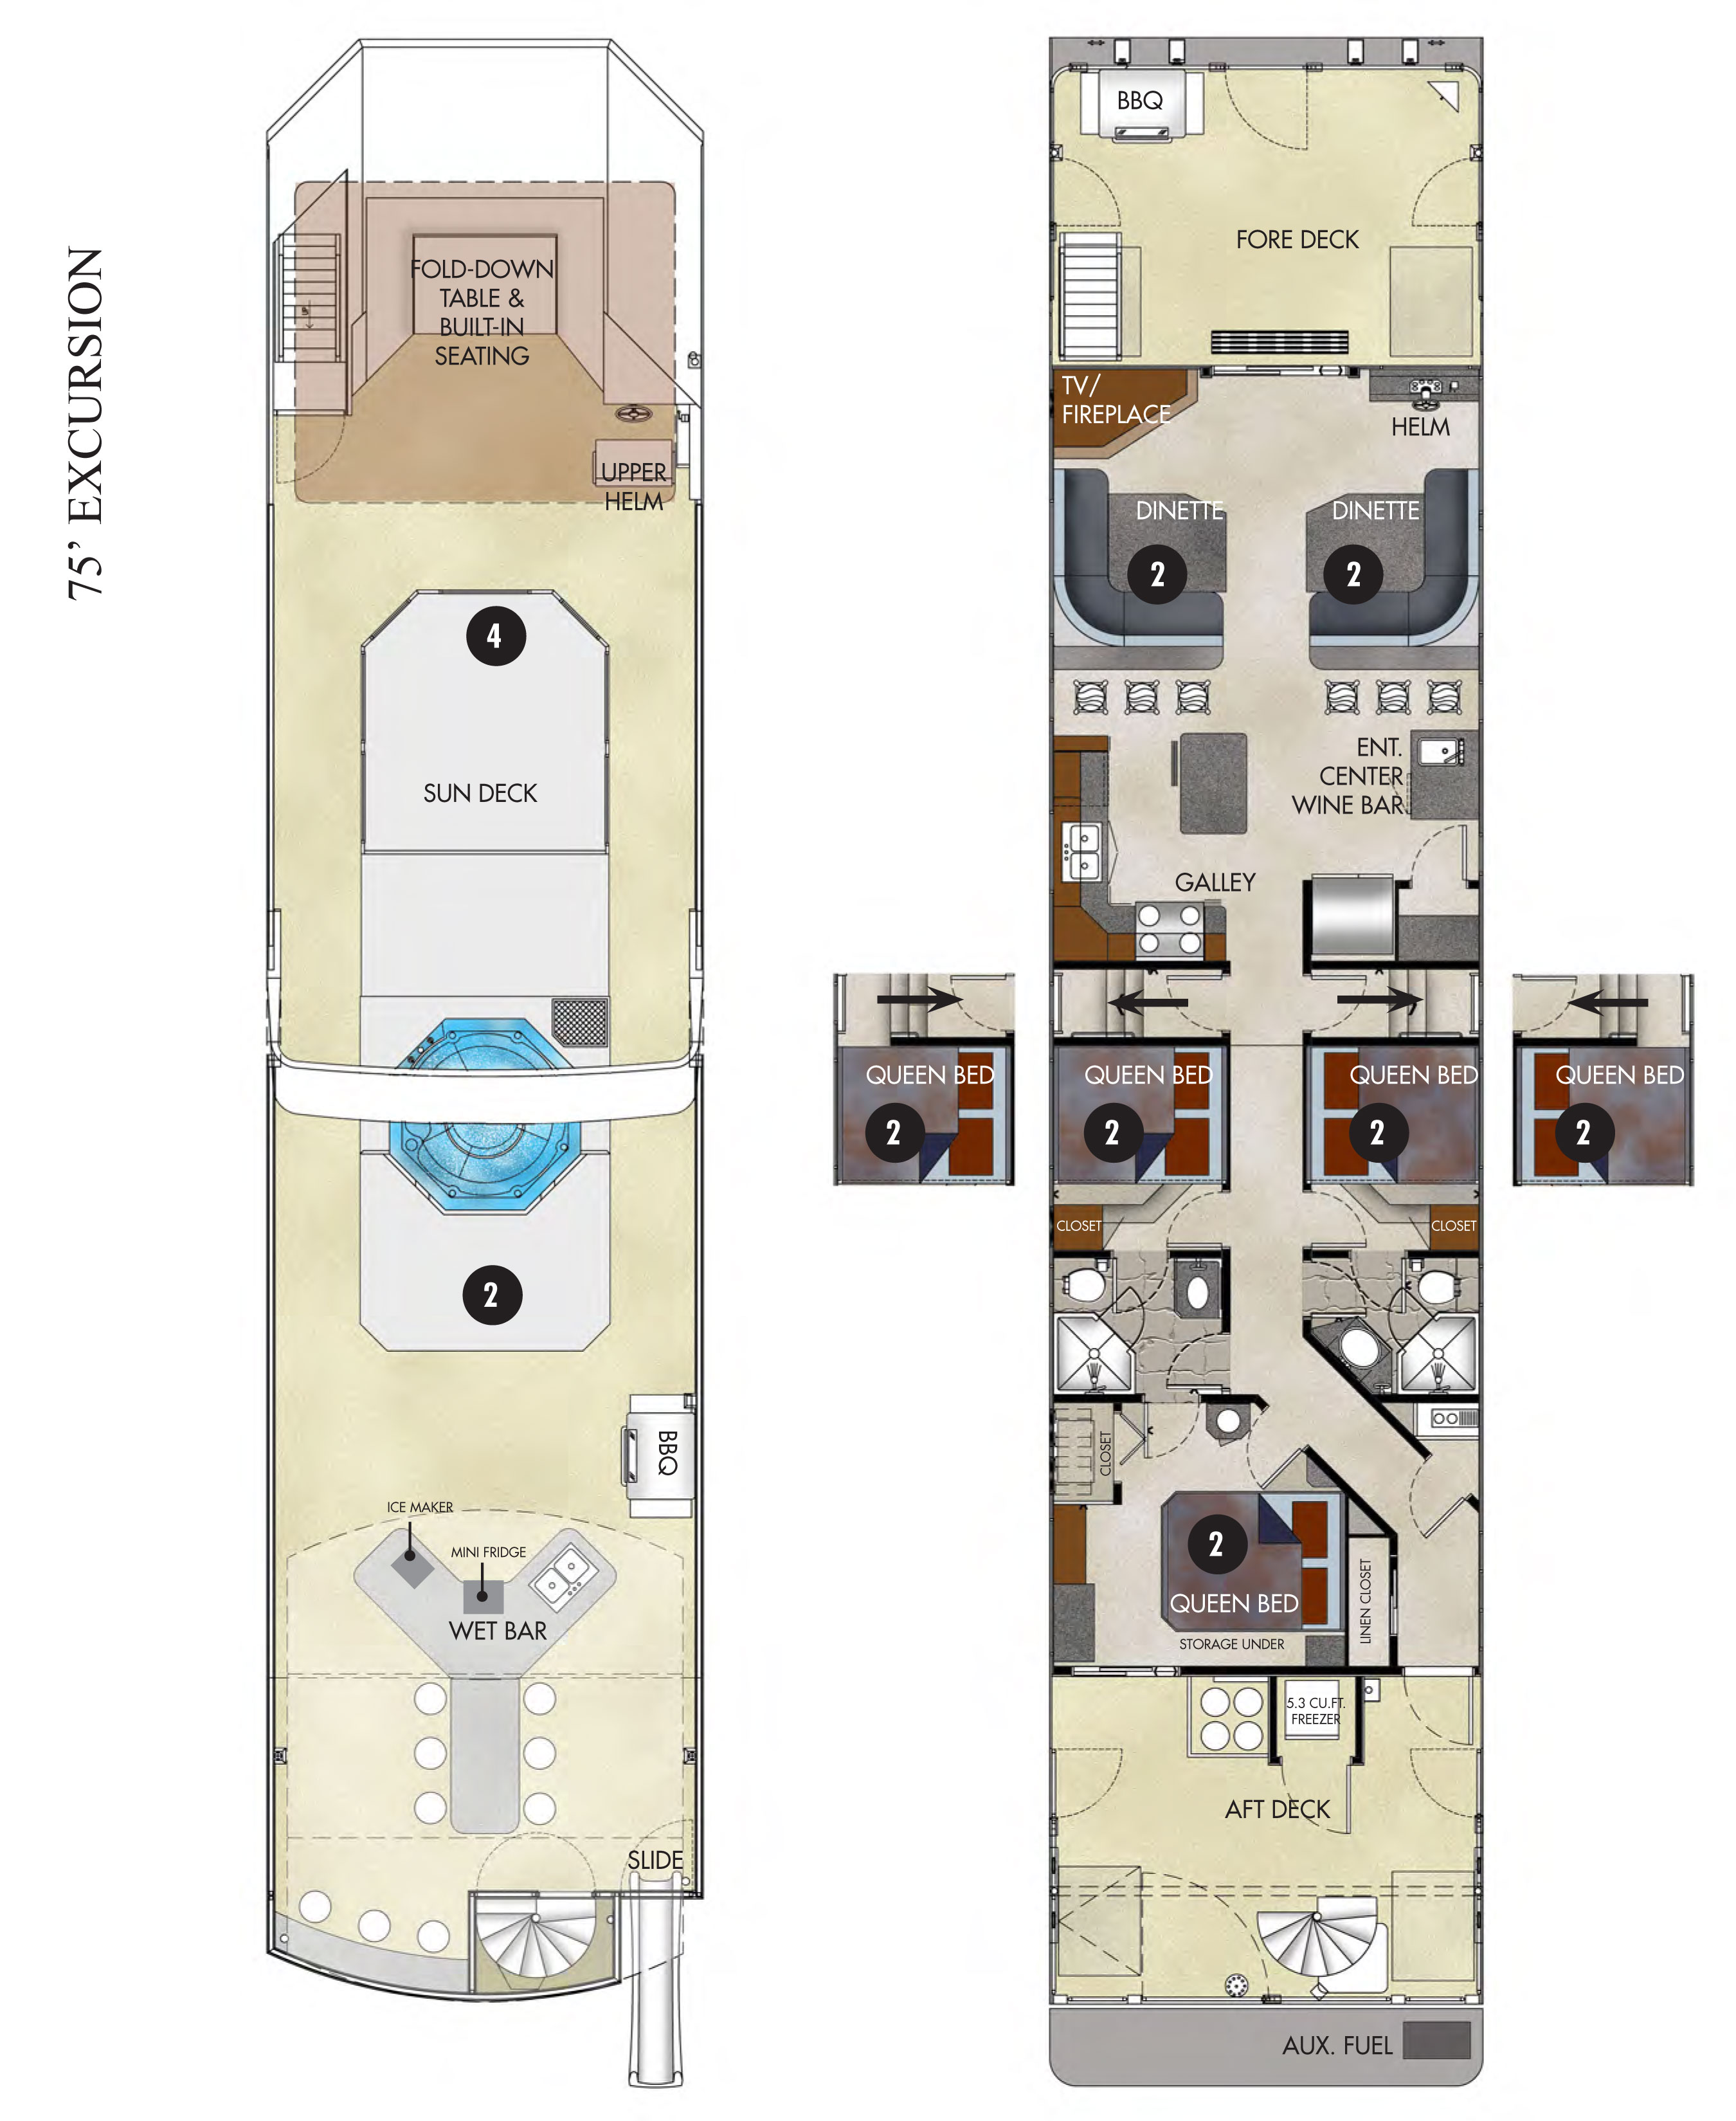 Excursion luxury houseboat rental lake powell resorts for Boat house floor plans